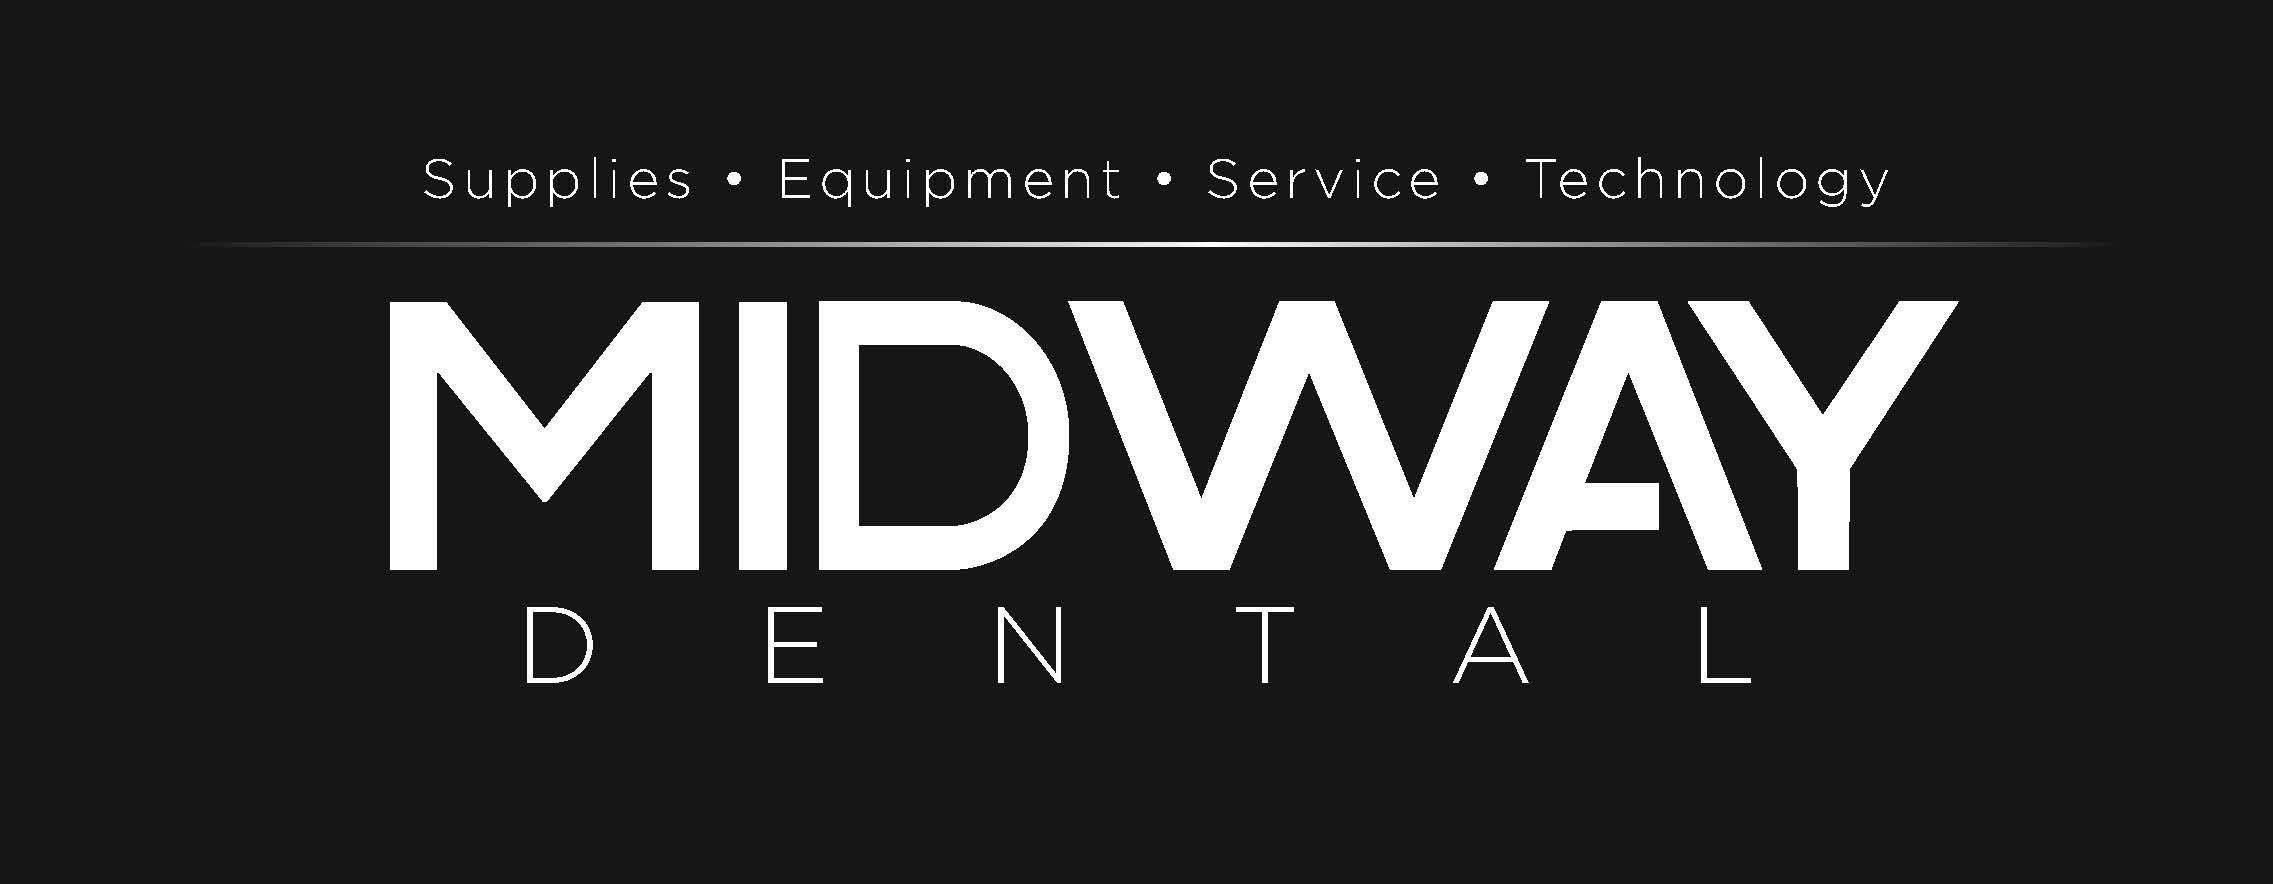 Midway Dental Supply logo